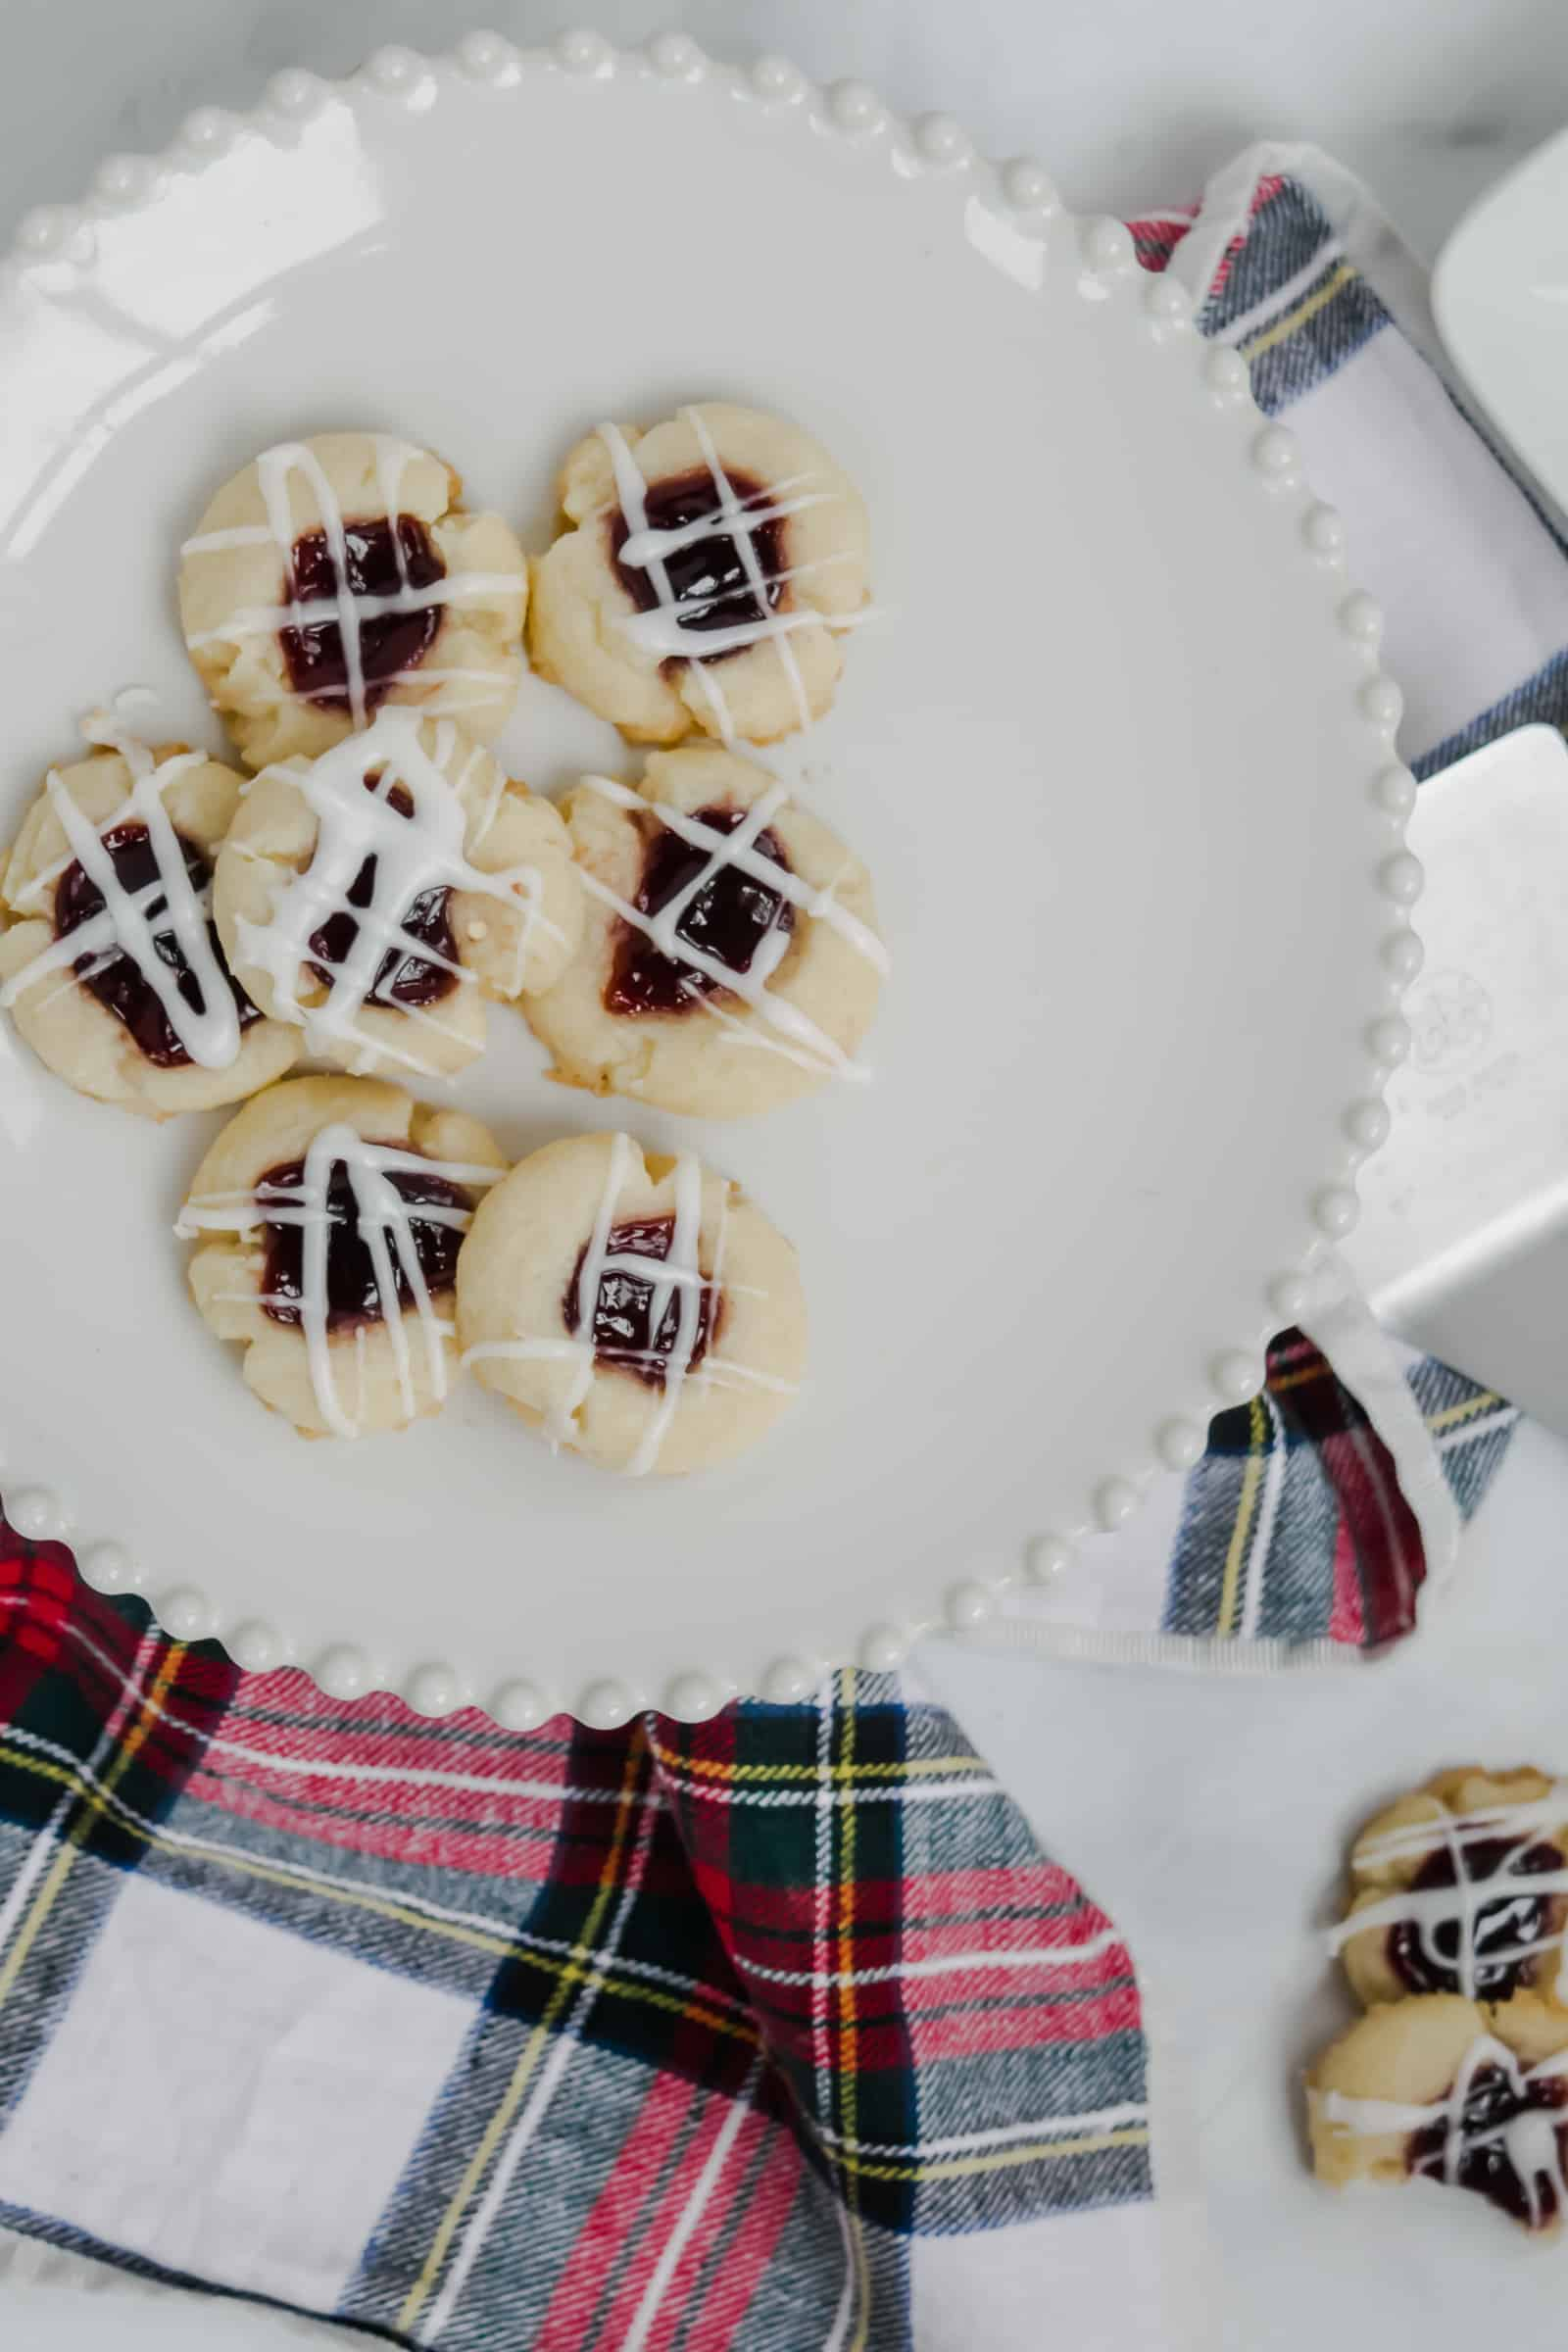 raspberry almond thumbprints on a white pedestal with a red and white plaid napkin and plates of cookies